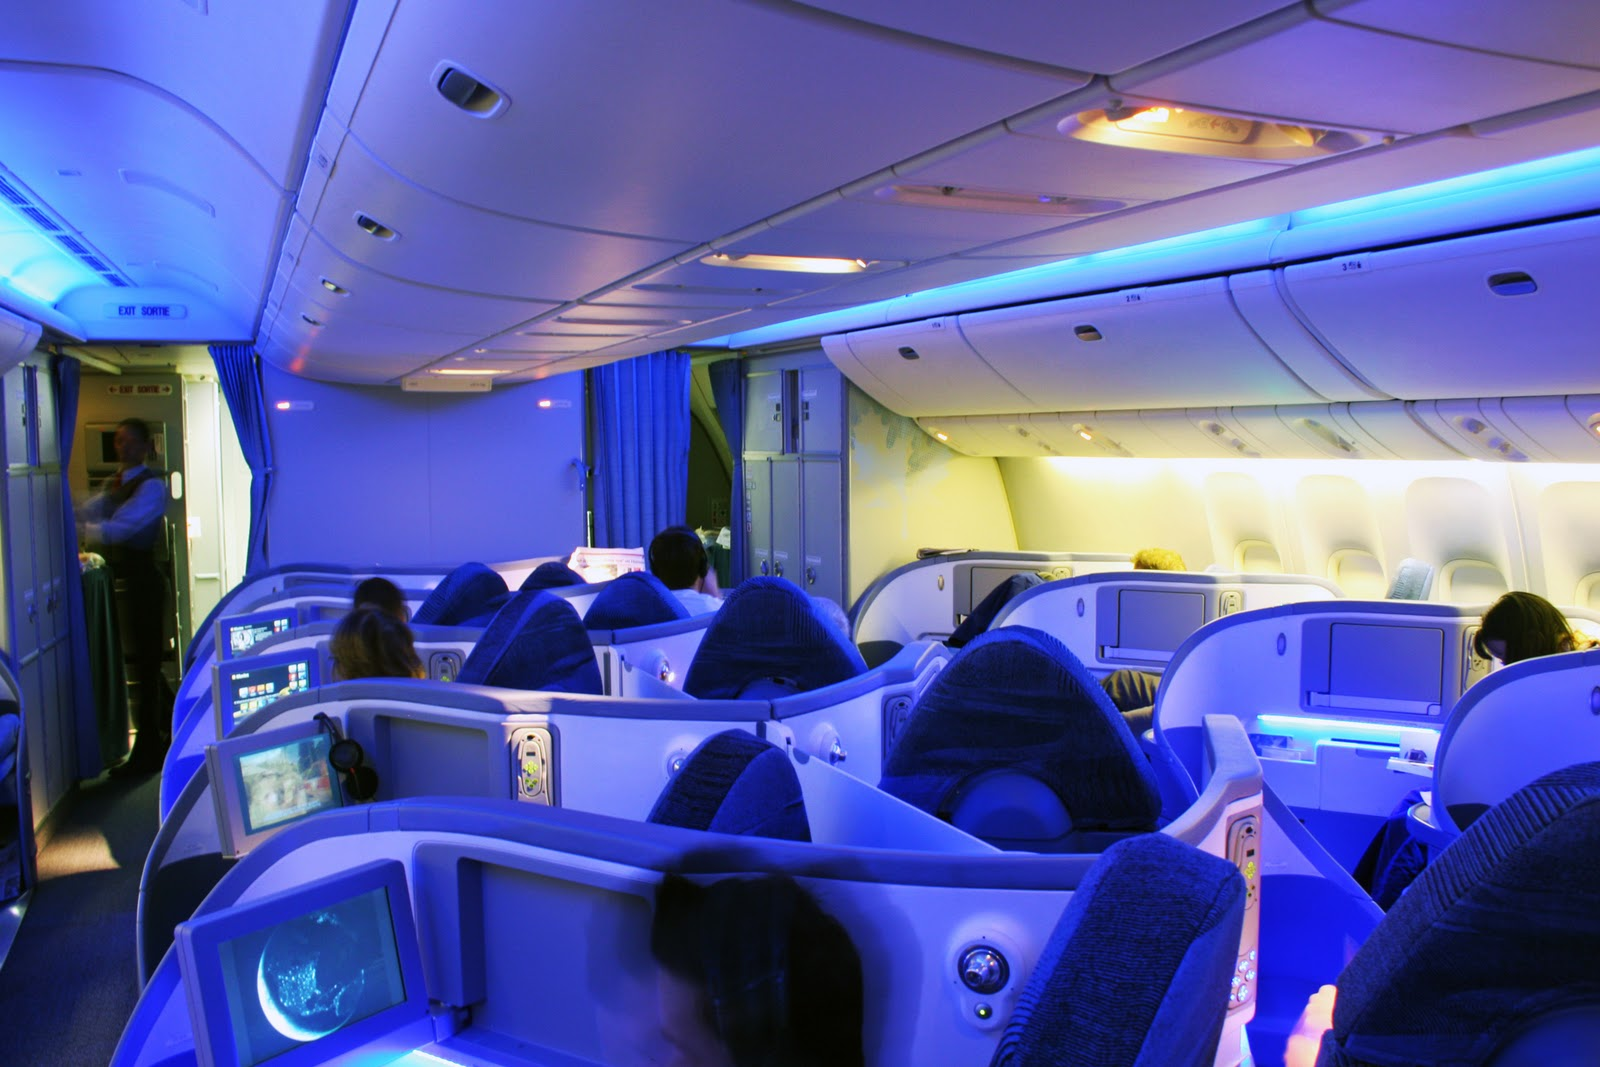 Trololo blogg 787 iphone wallpaper for Interior 787 dreamliner